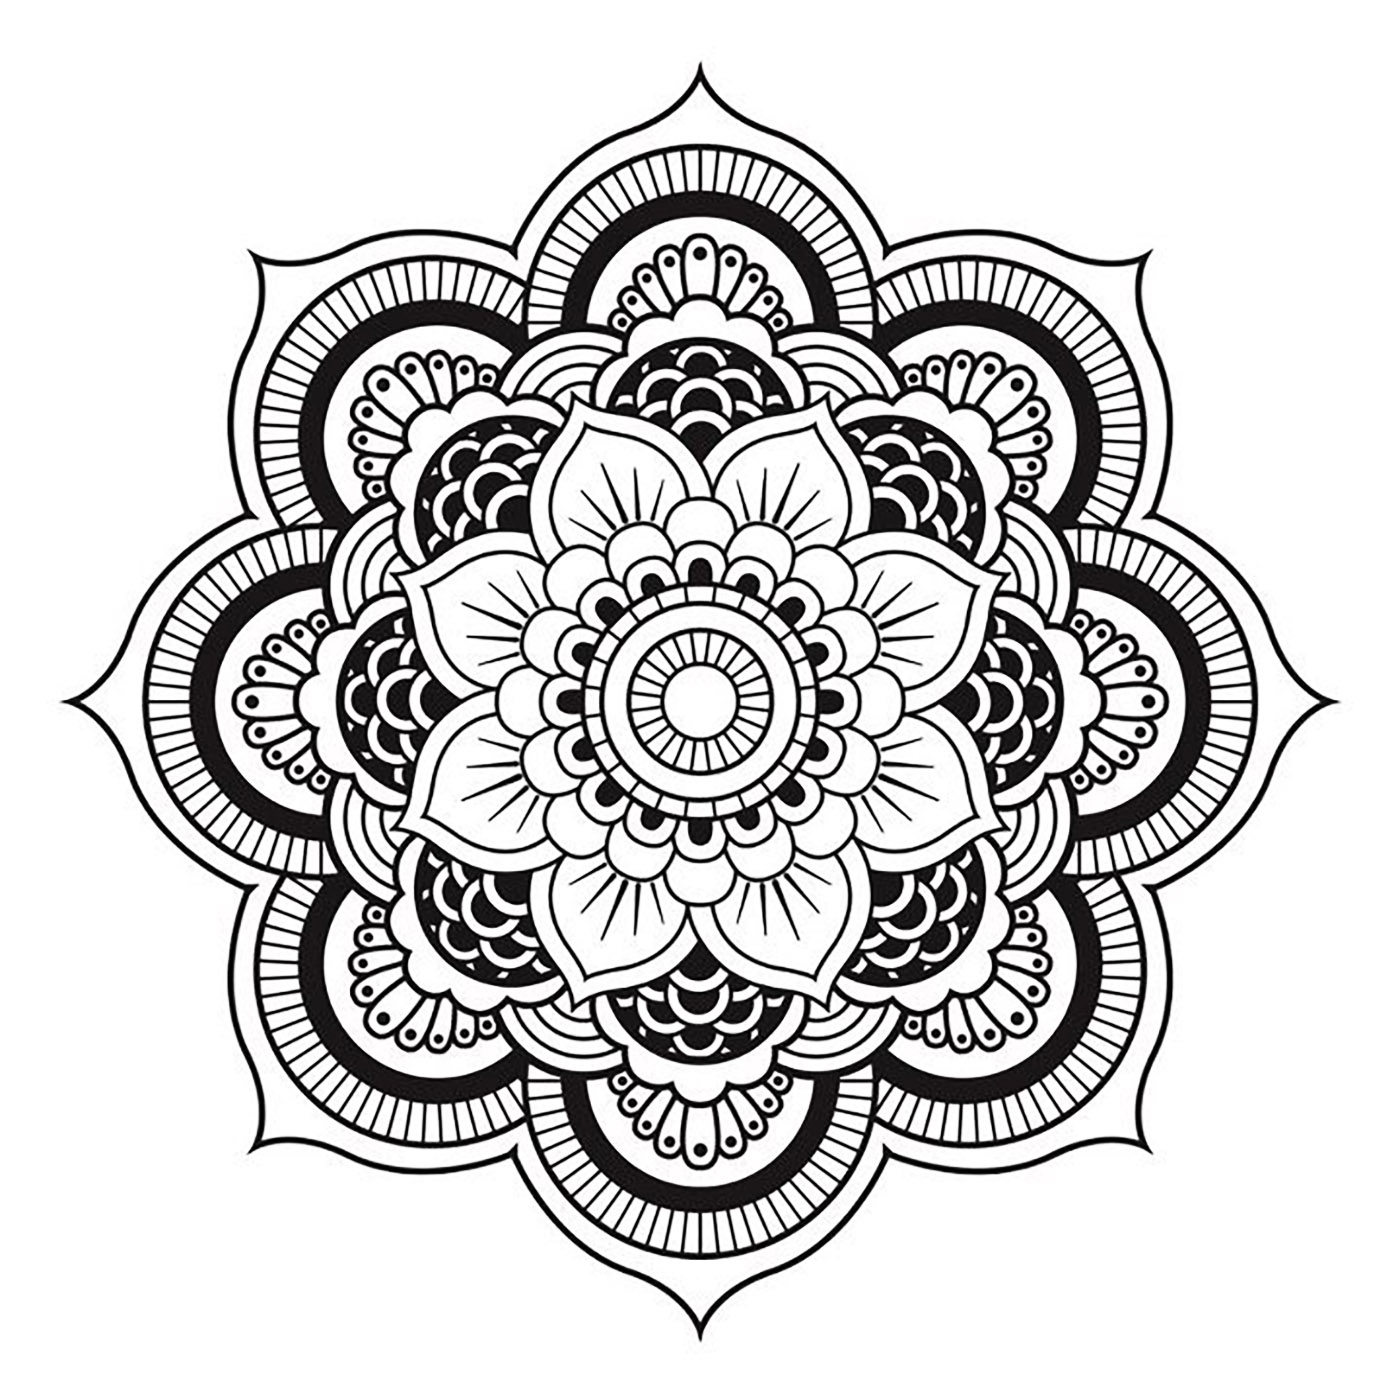 mandala to download free simple flower simple mandalas 100 mandalas zen anti stress. Black Bedroom Furniture Sets. Home Design Ideas